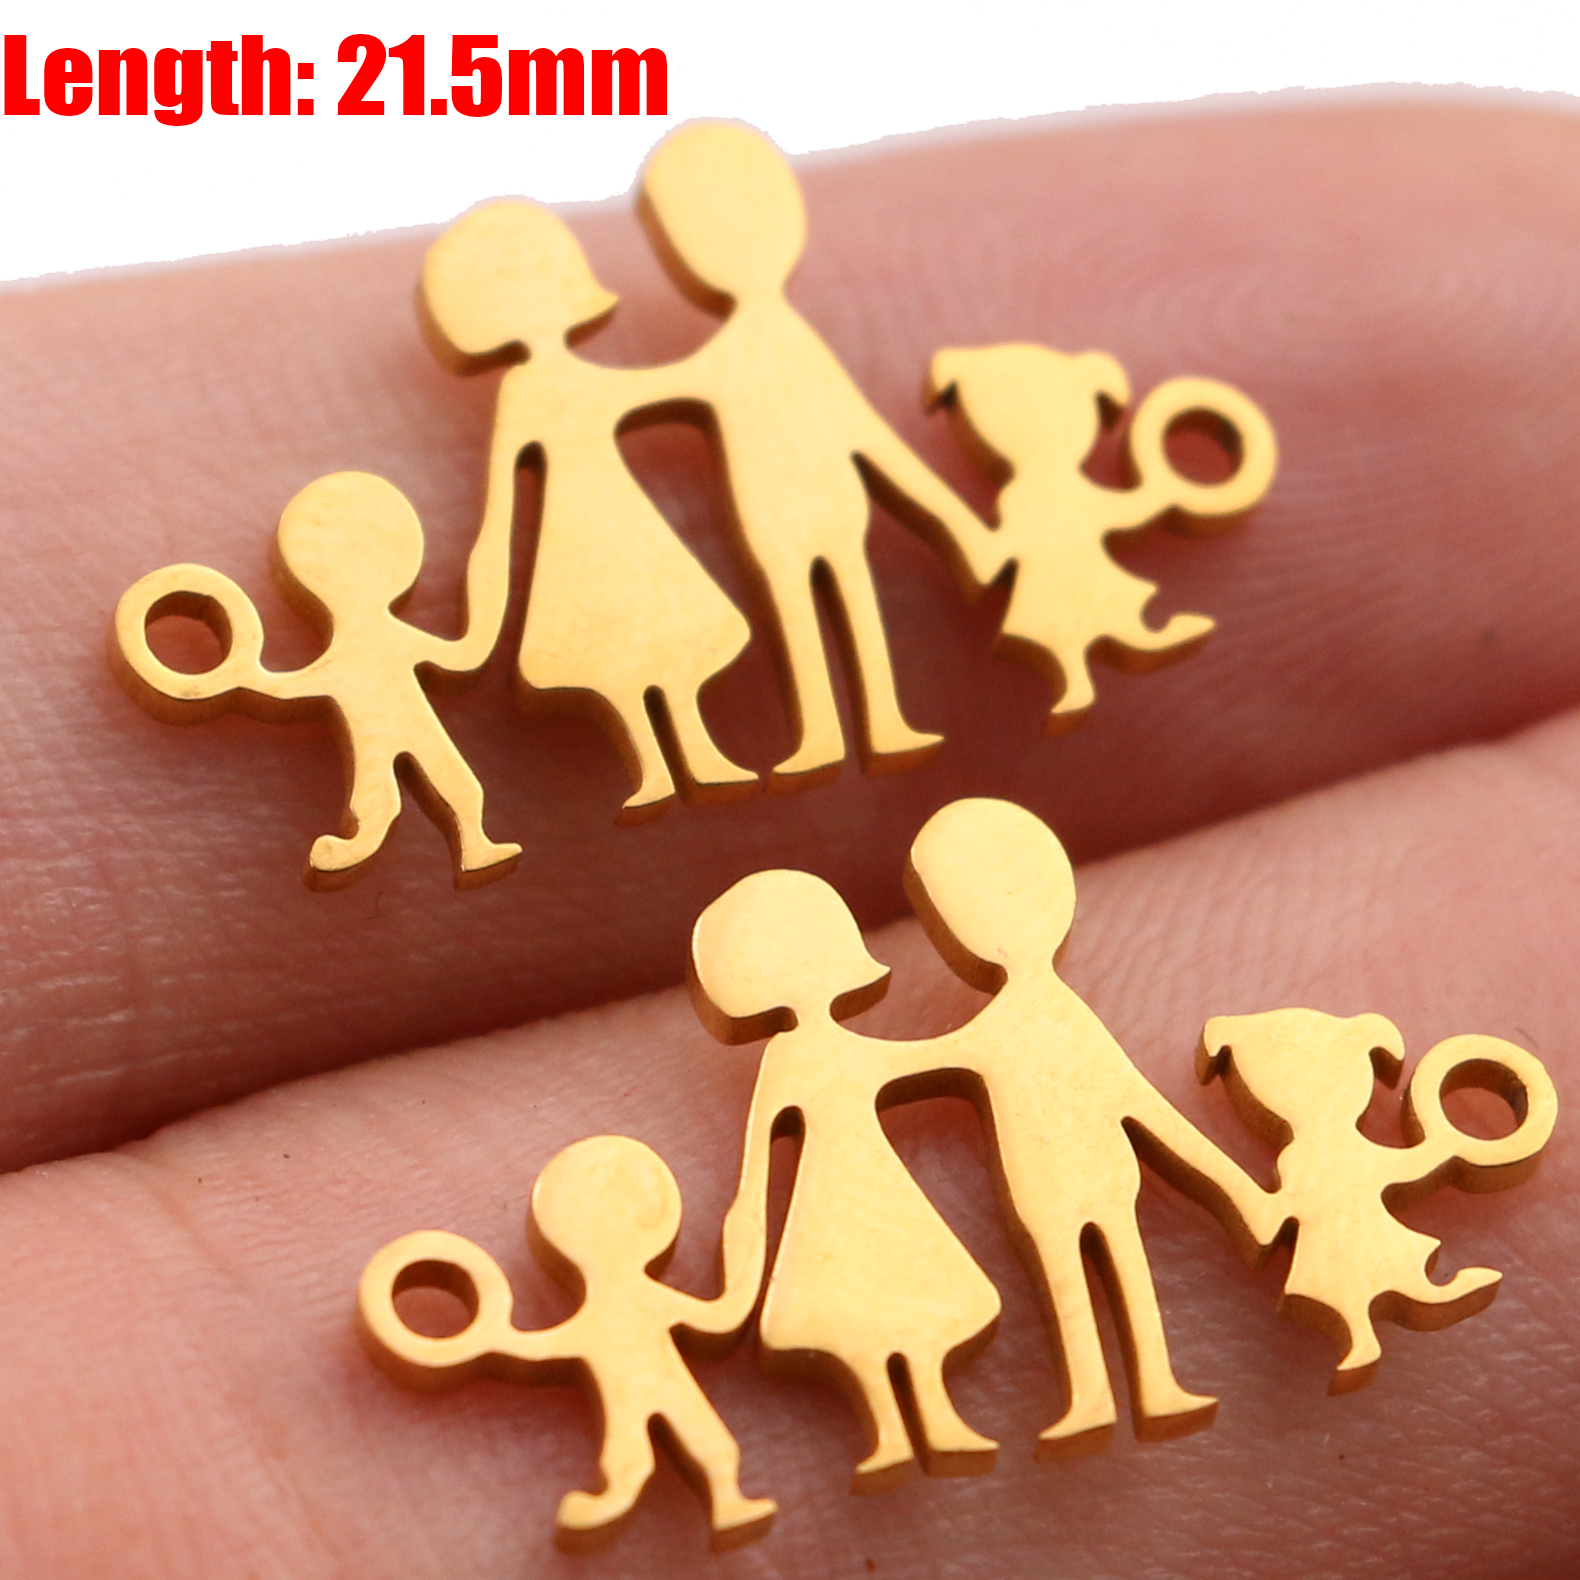 5pcs Family Chain Stainless Steel Pendant Necklace Parents and Children Necklaces Gold/steel Jewelry Gift for Mom Dad New Twice - Цвет: Gold 37